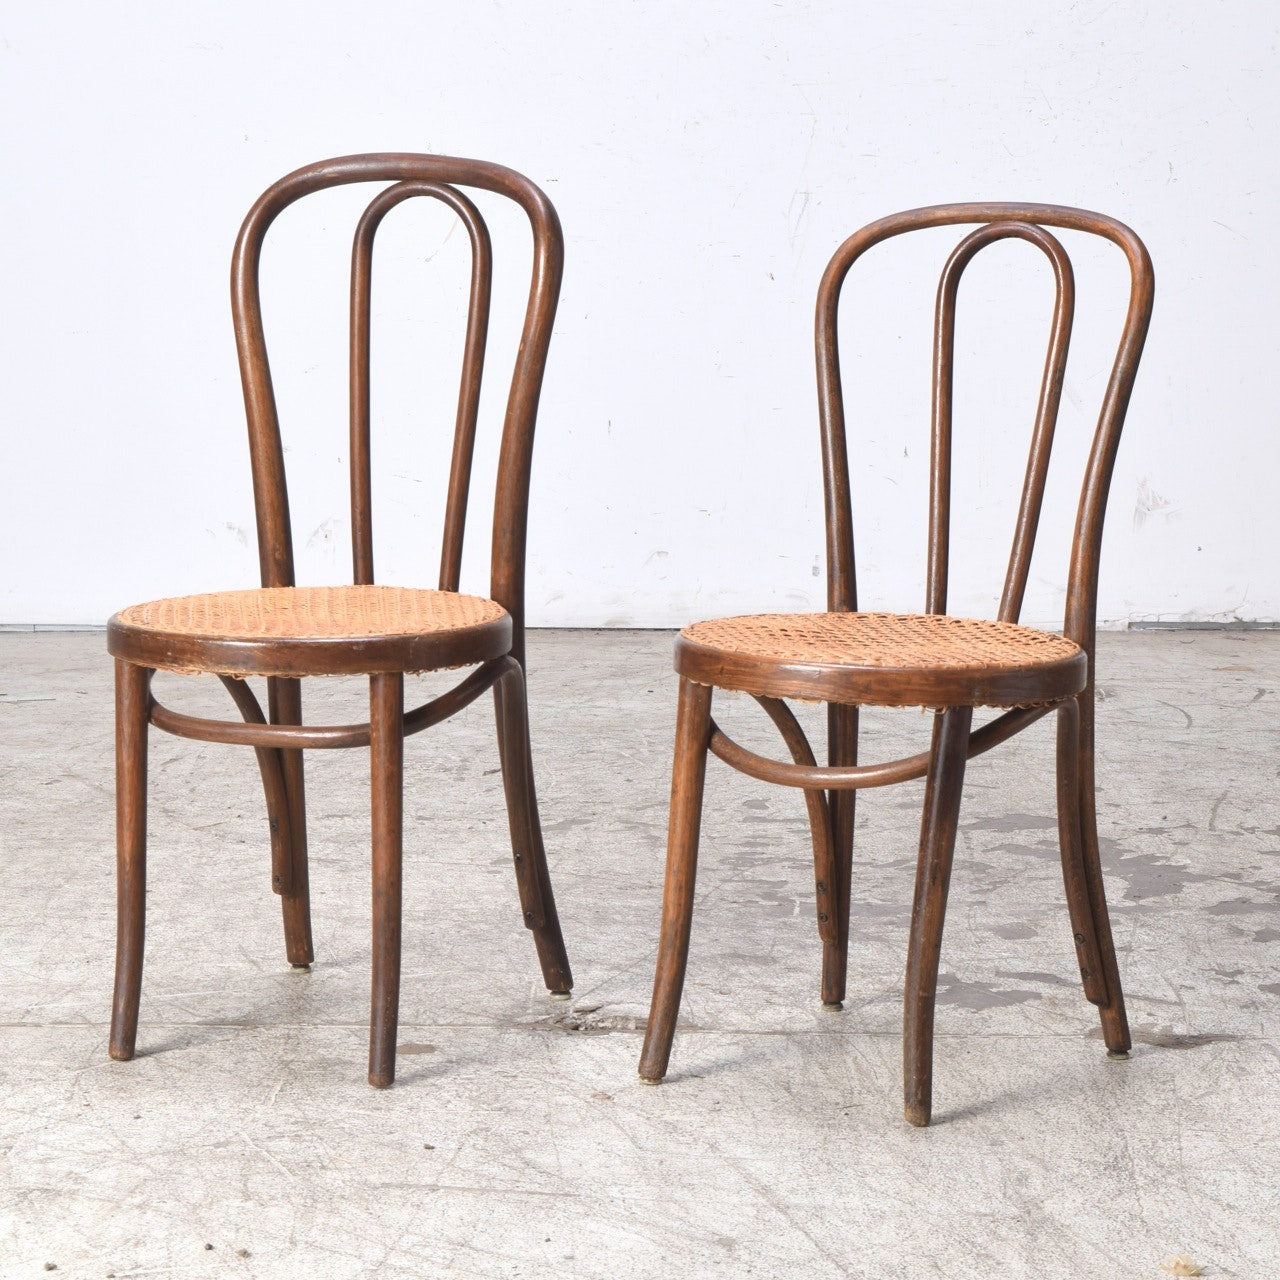 Bentwood Cafe Chairs with Woven Seats